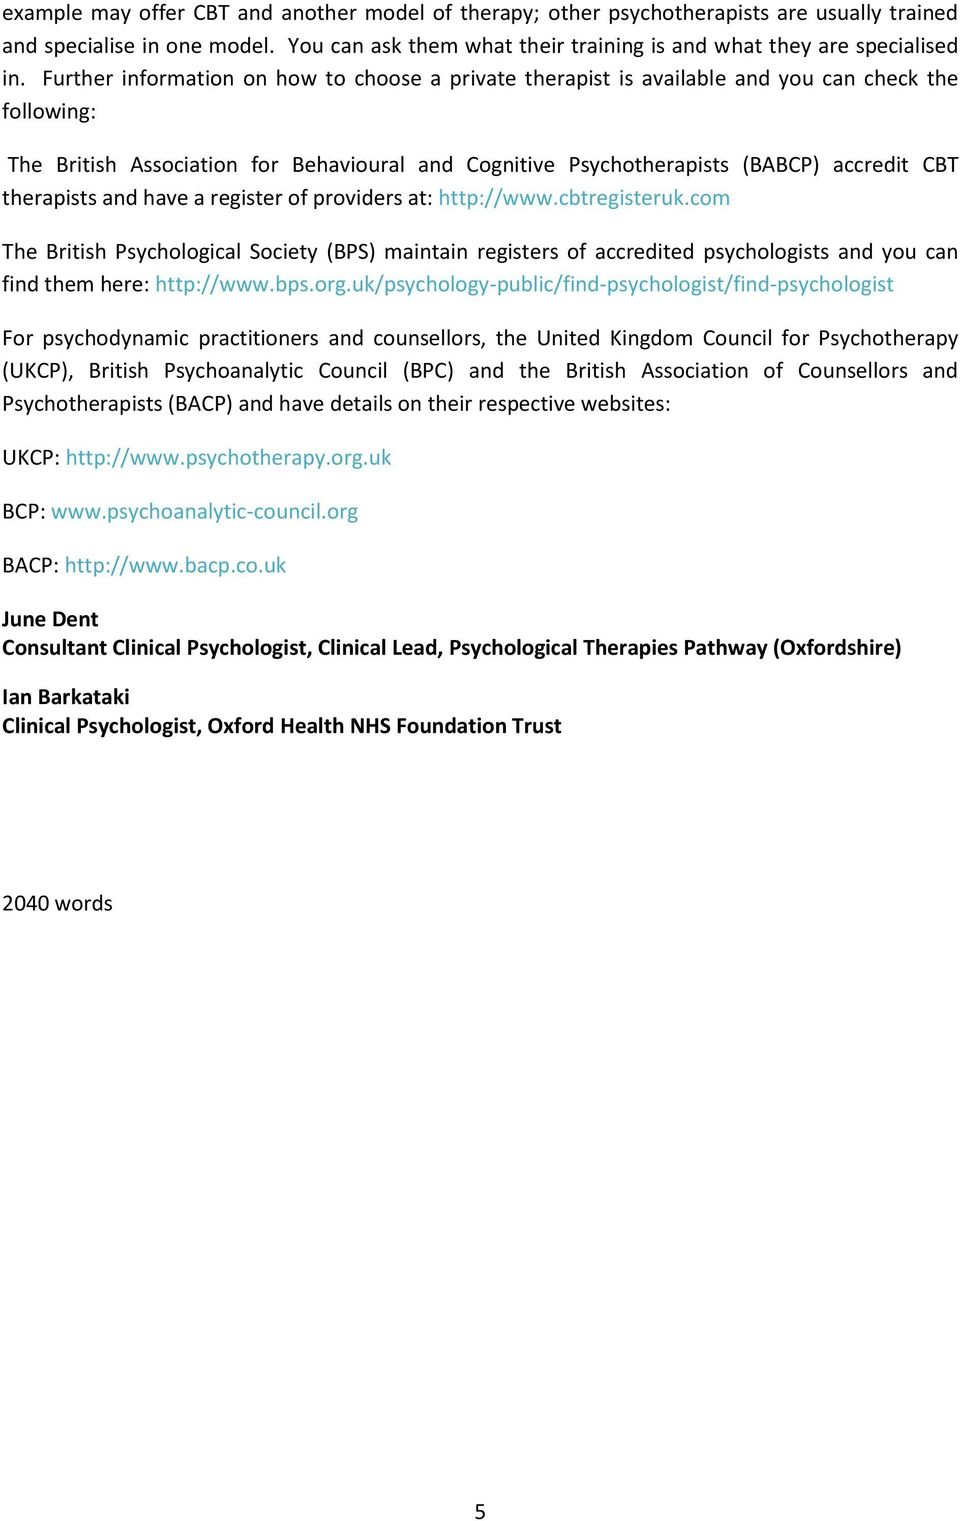 therapists and have a register of providers at: http://www.cbtregisteruk.